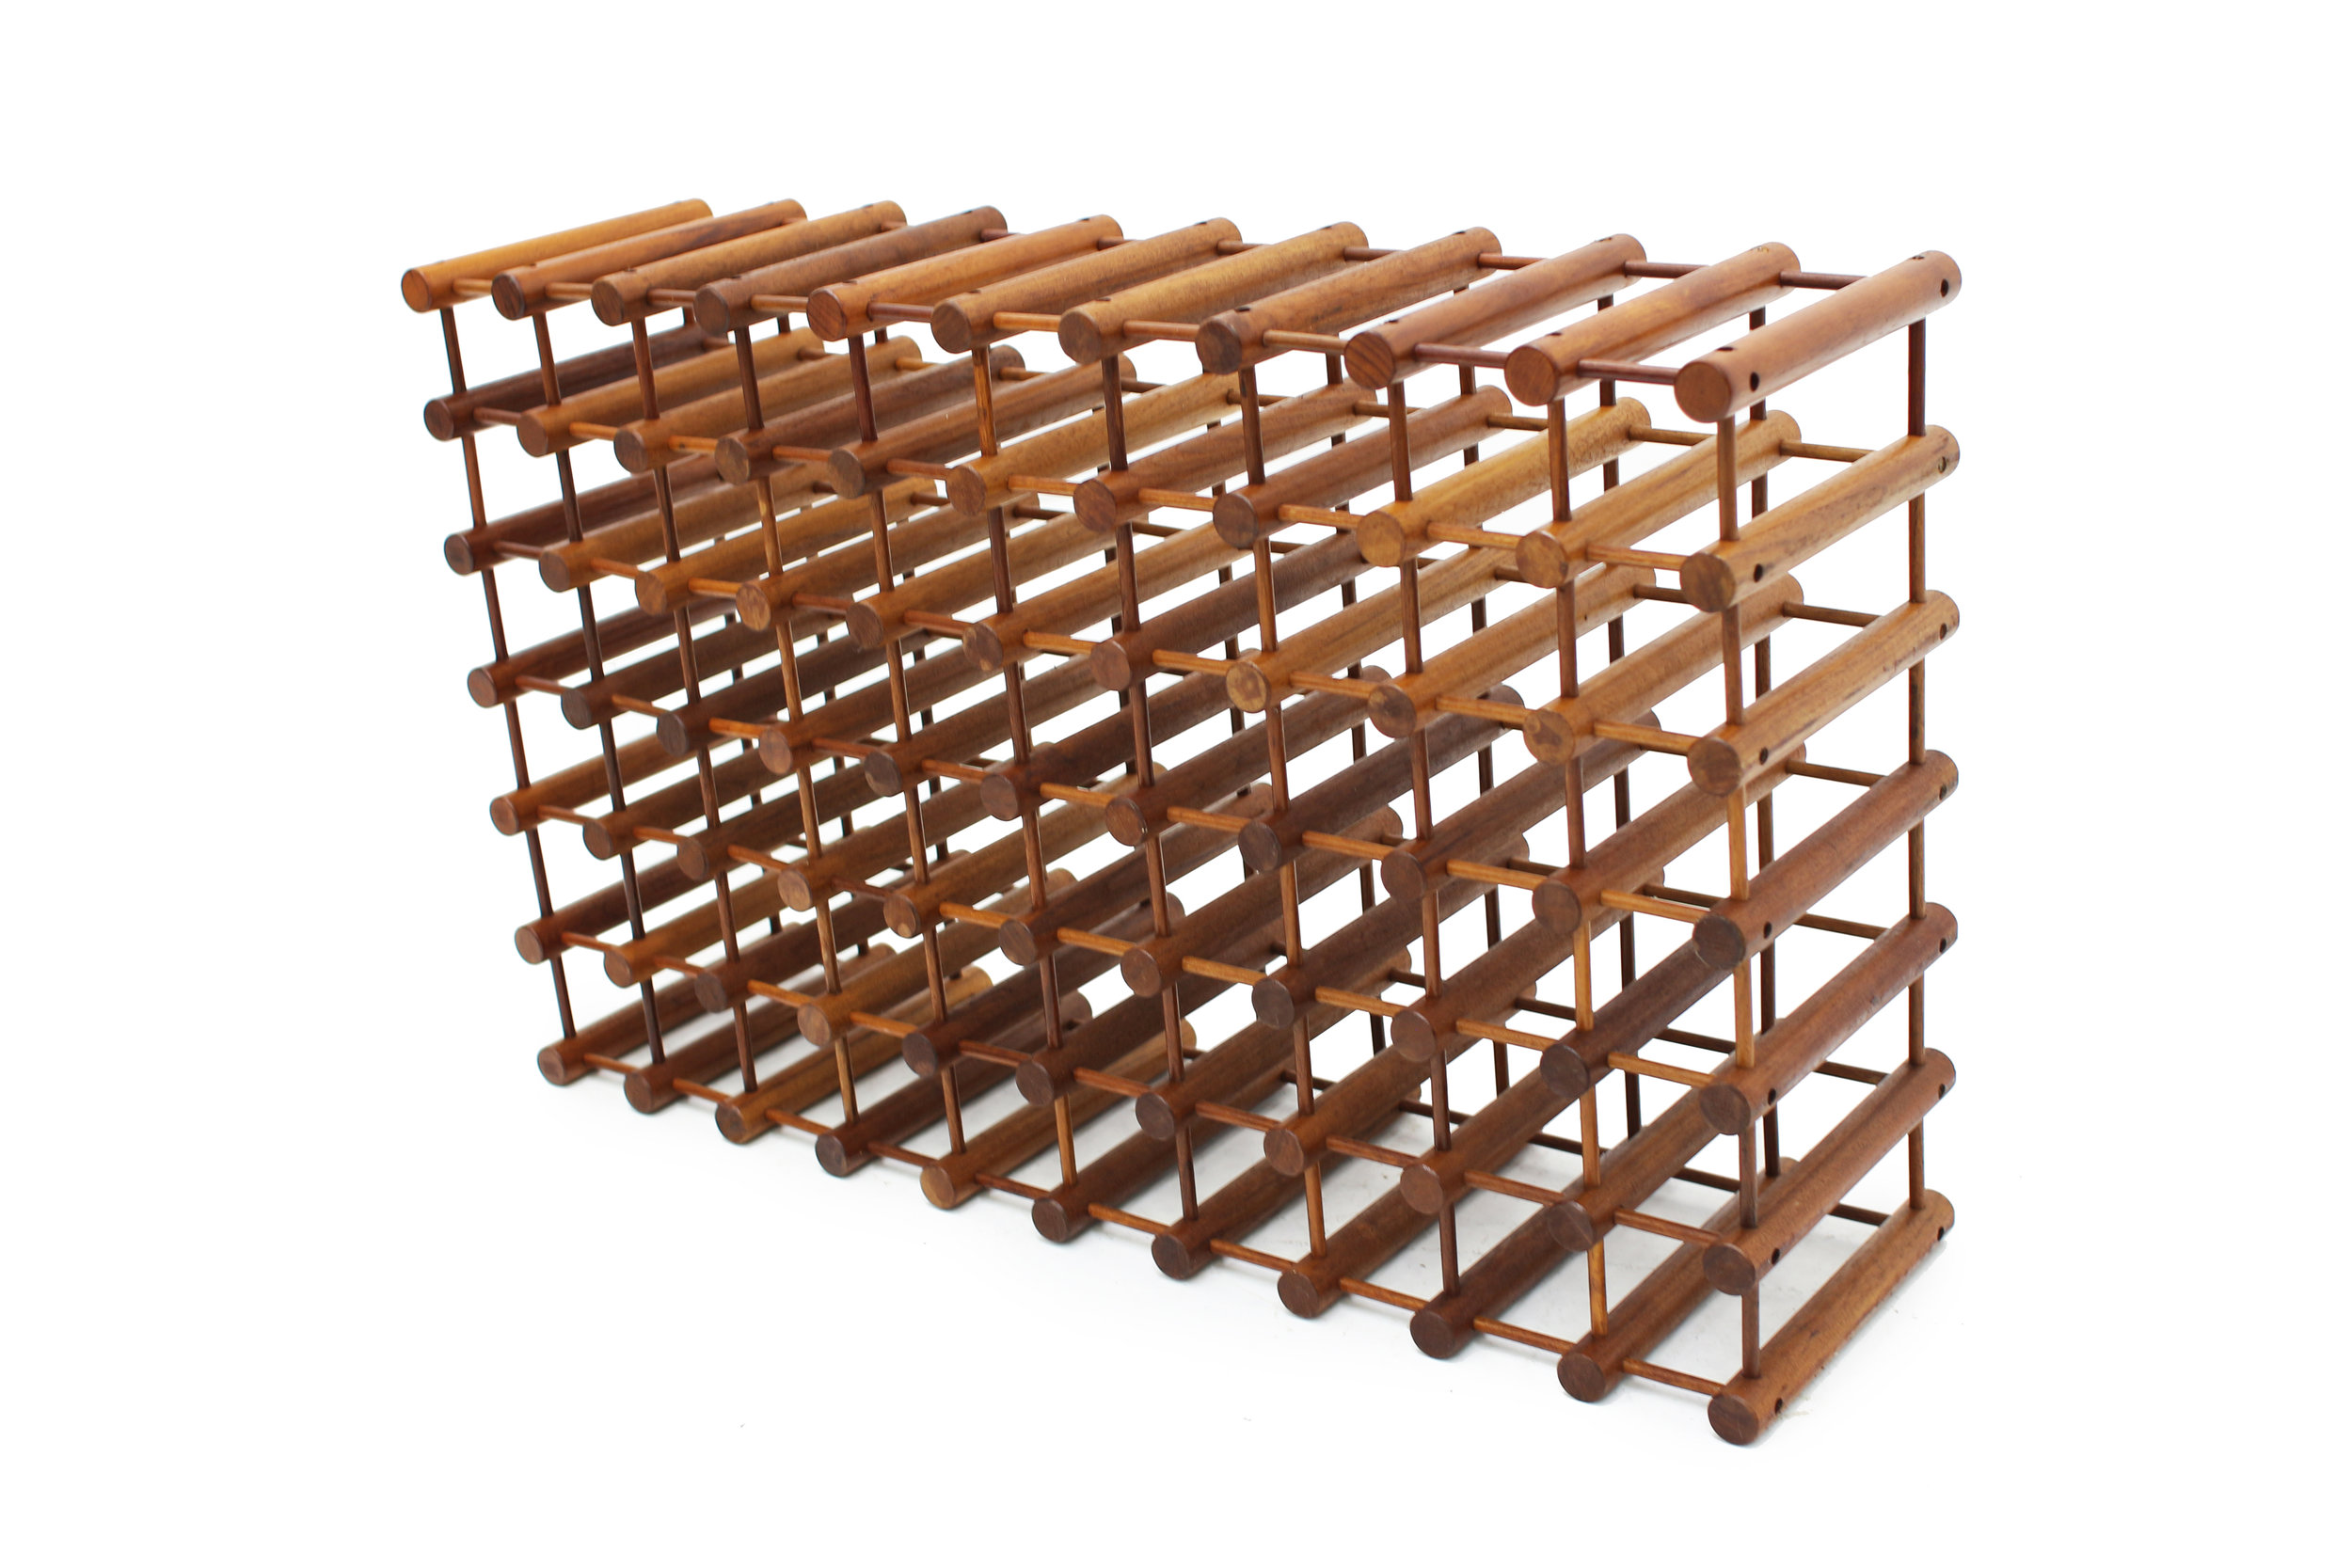 Danish Teak 60 Bottle Wine Rack by Nissen Langaa (2).jpg